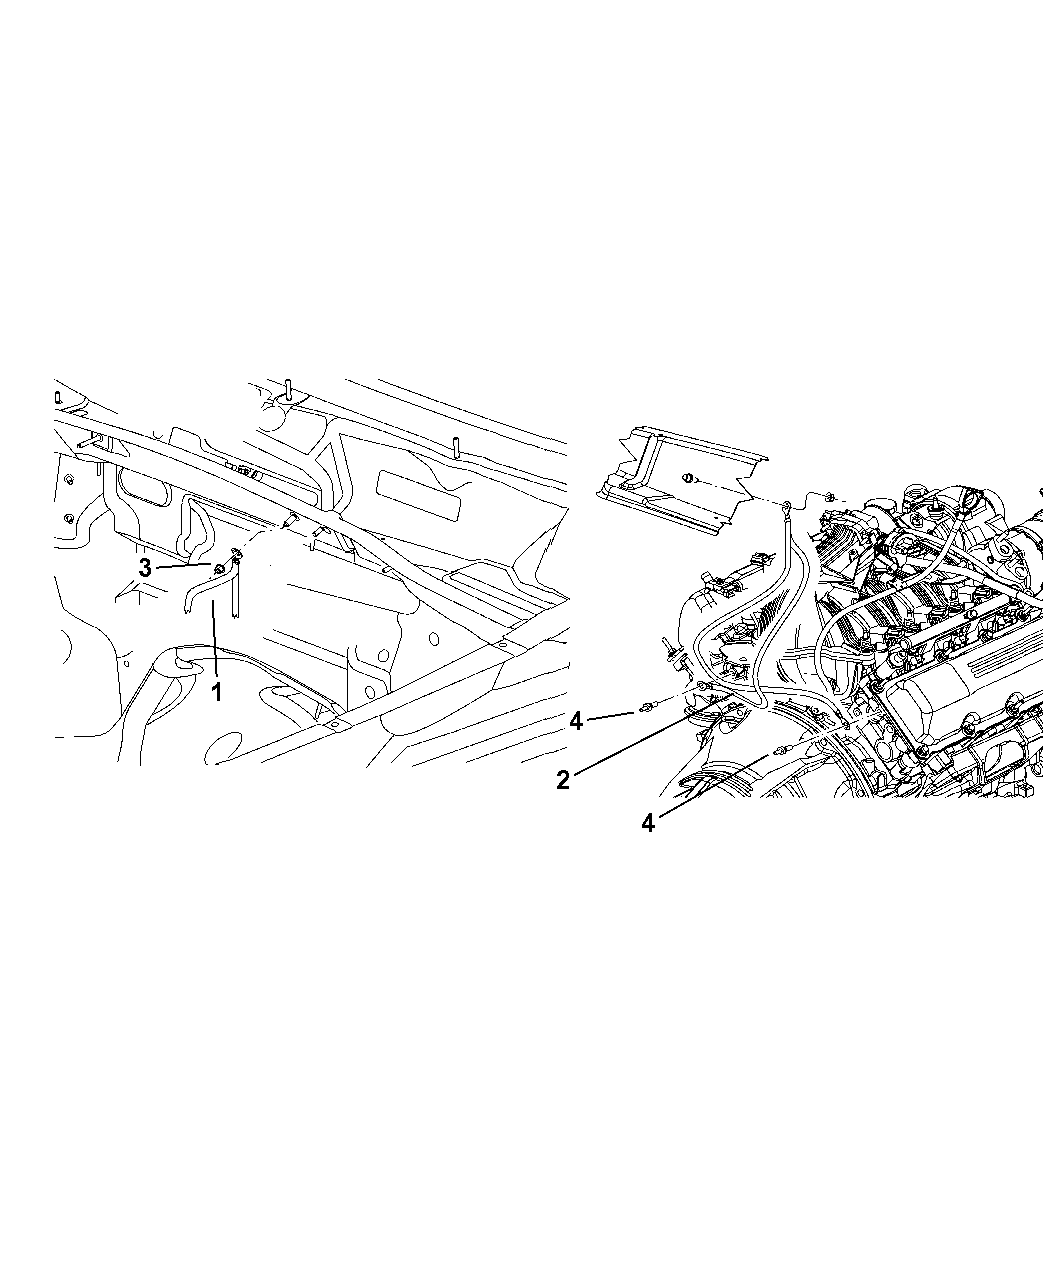 Bestseller: 2006 Jeep Liberty Engine Diagram